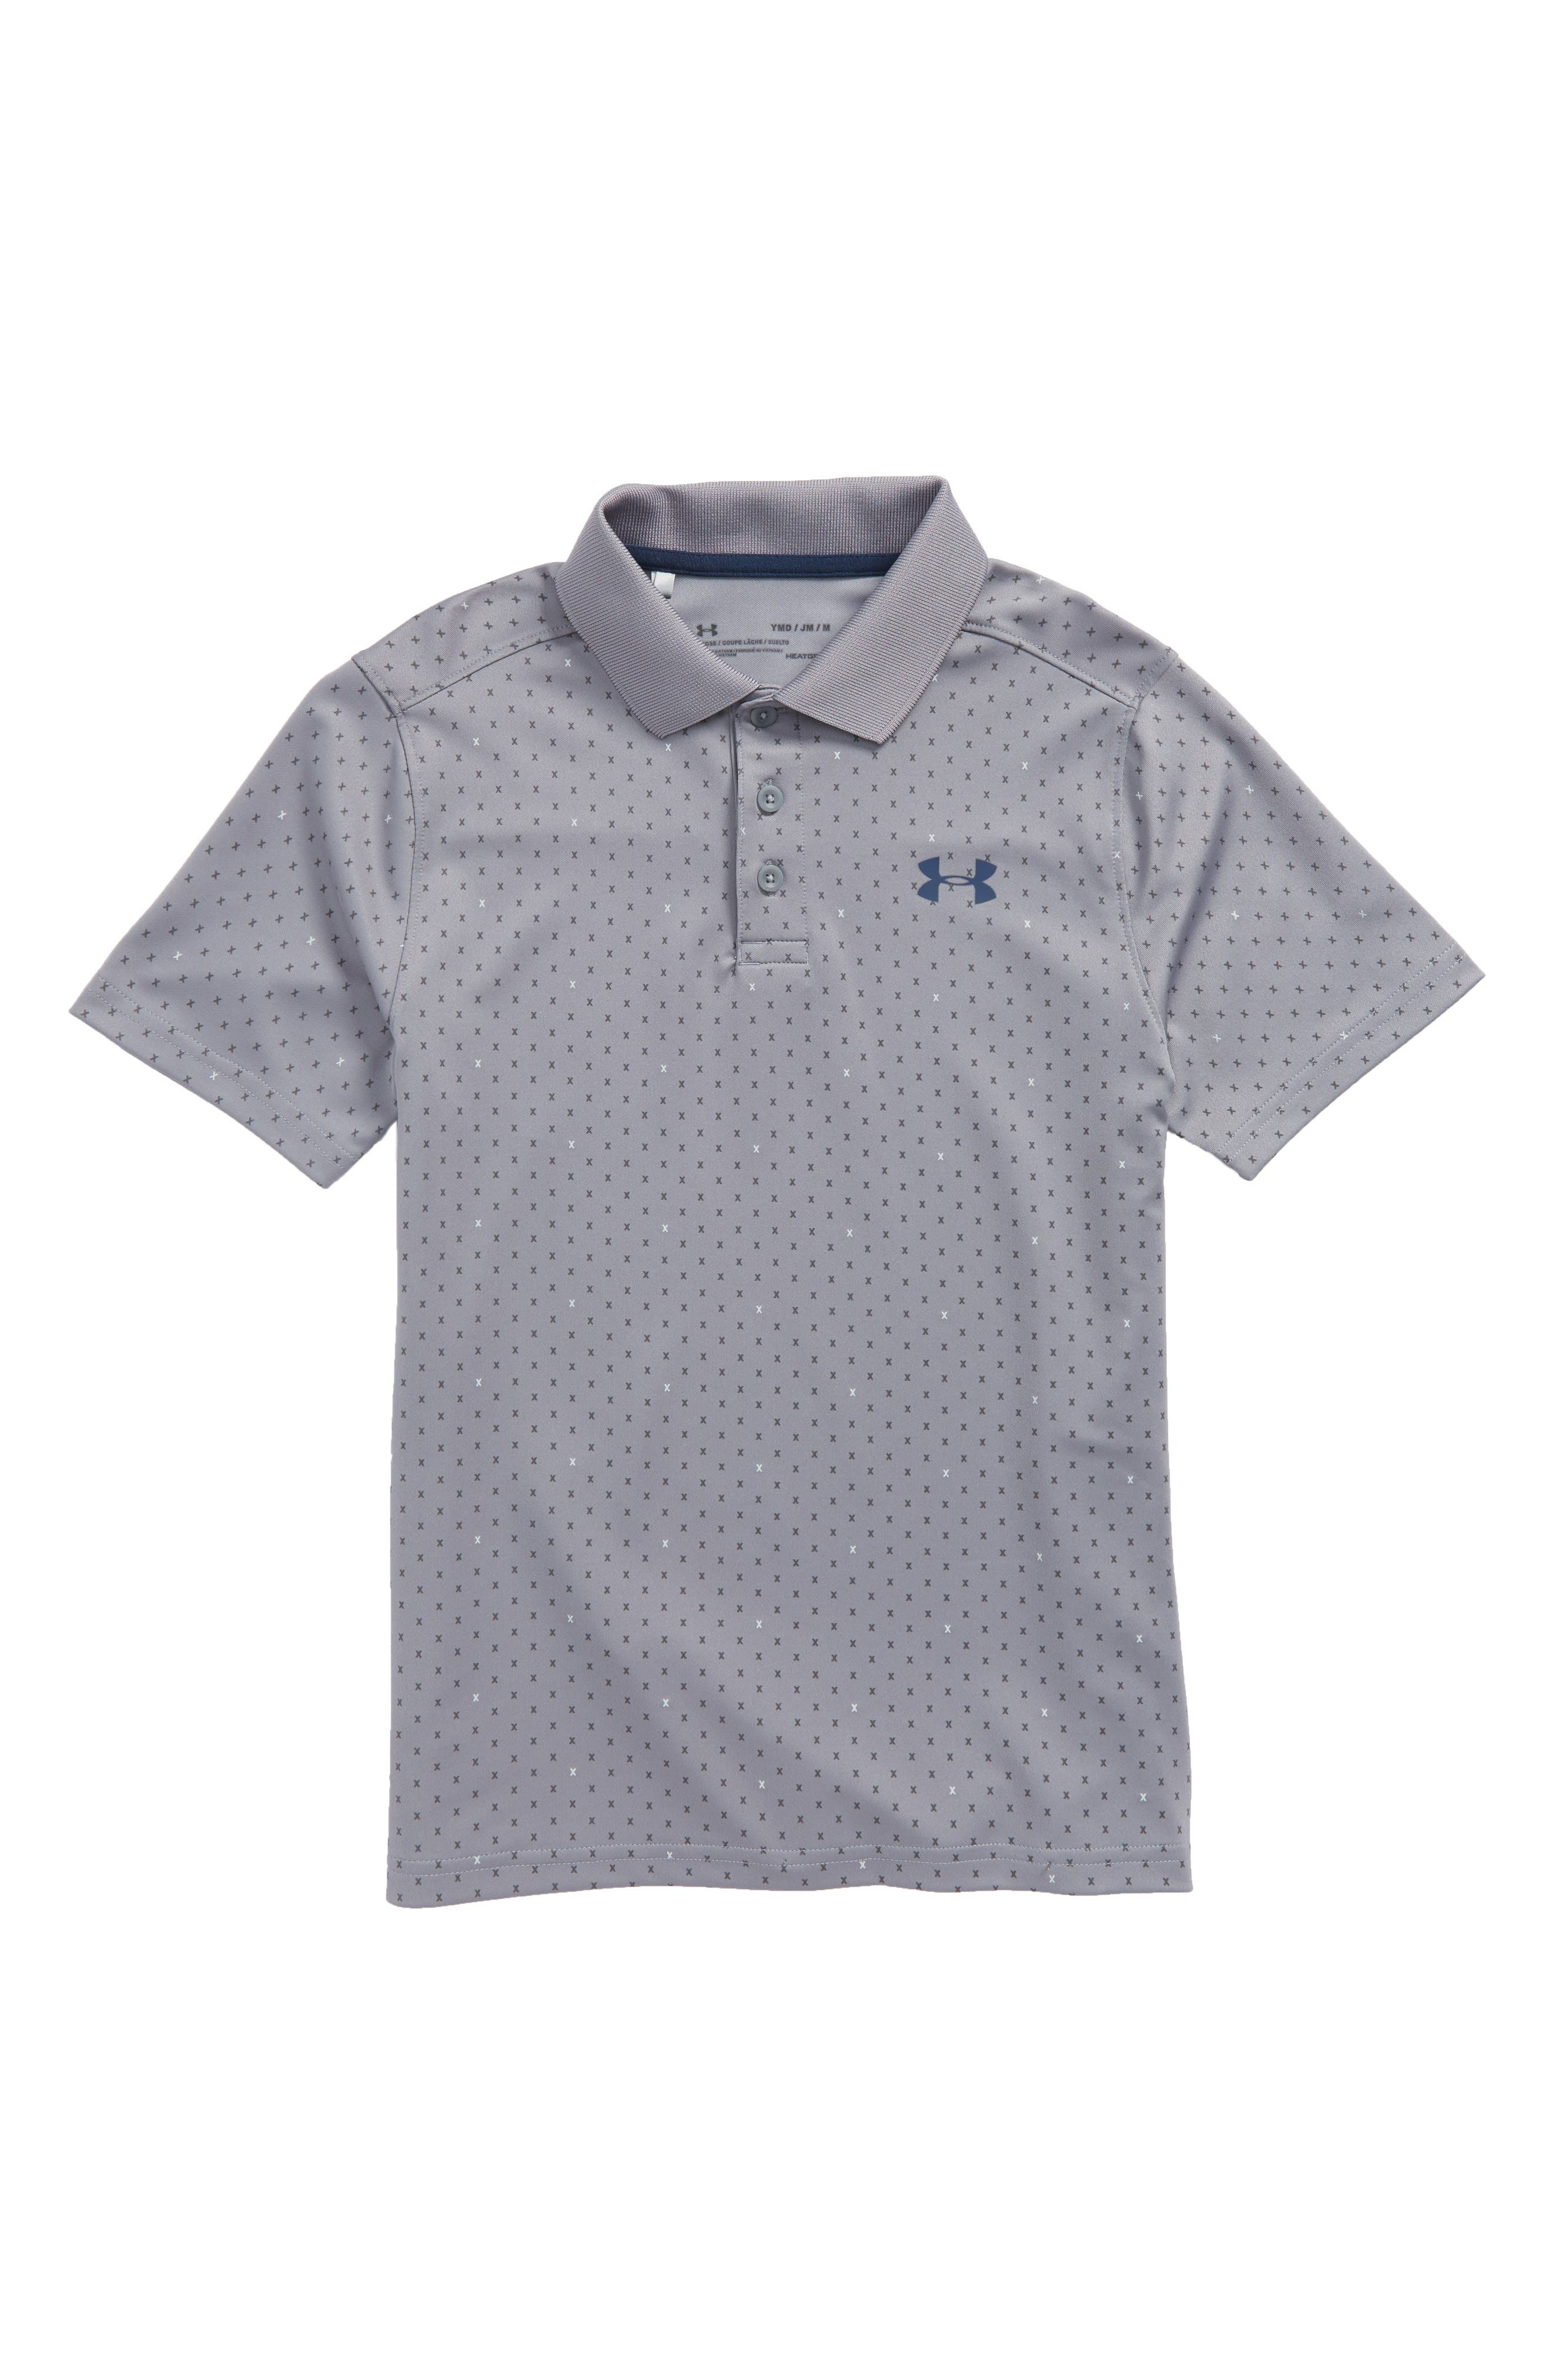 HeatGear<sup>®</sup> Polo,                         Main,                         color, 020